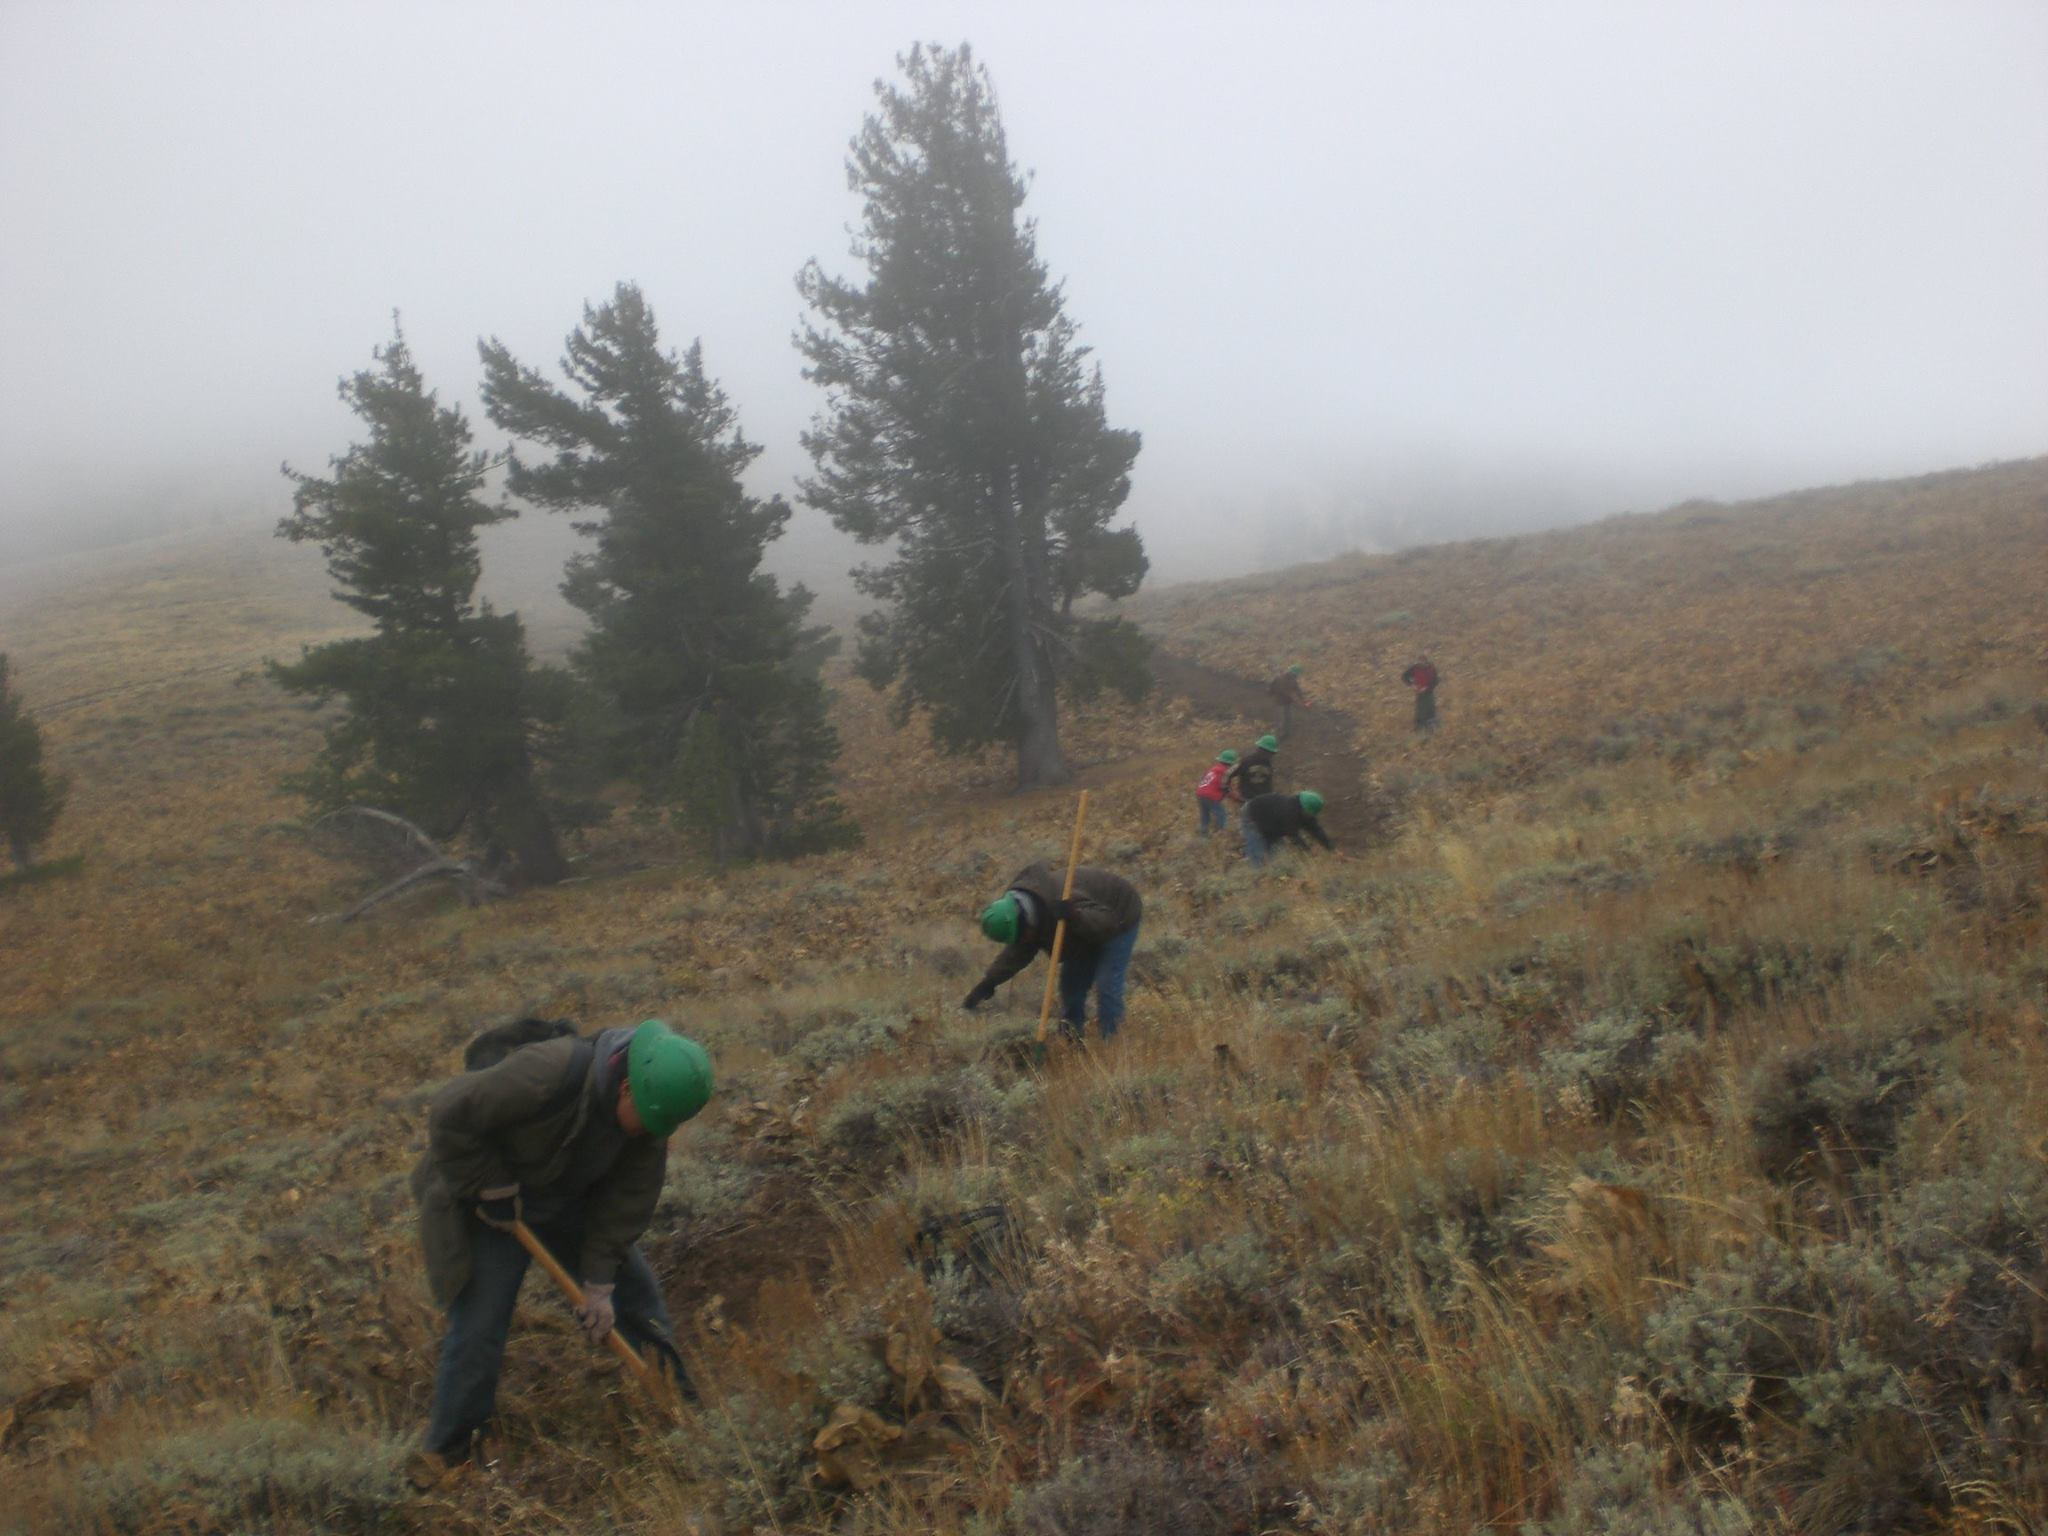 photo: Volunteers working on trail on National Public Lands Day. Photo by USFS.